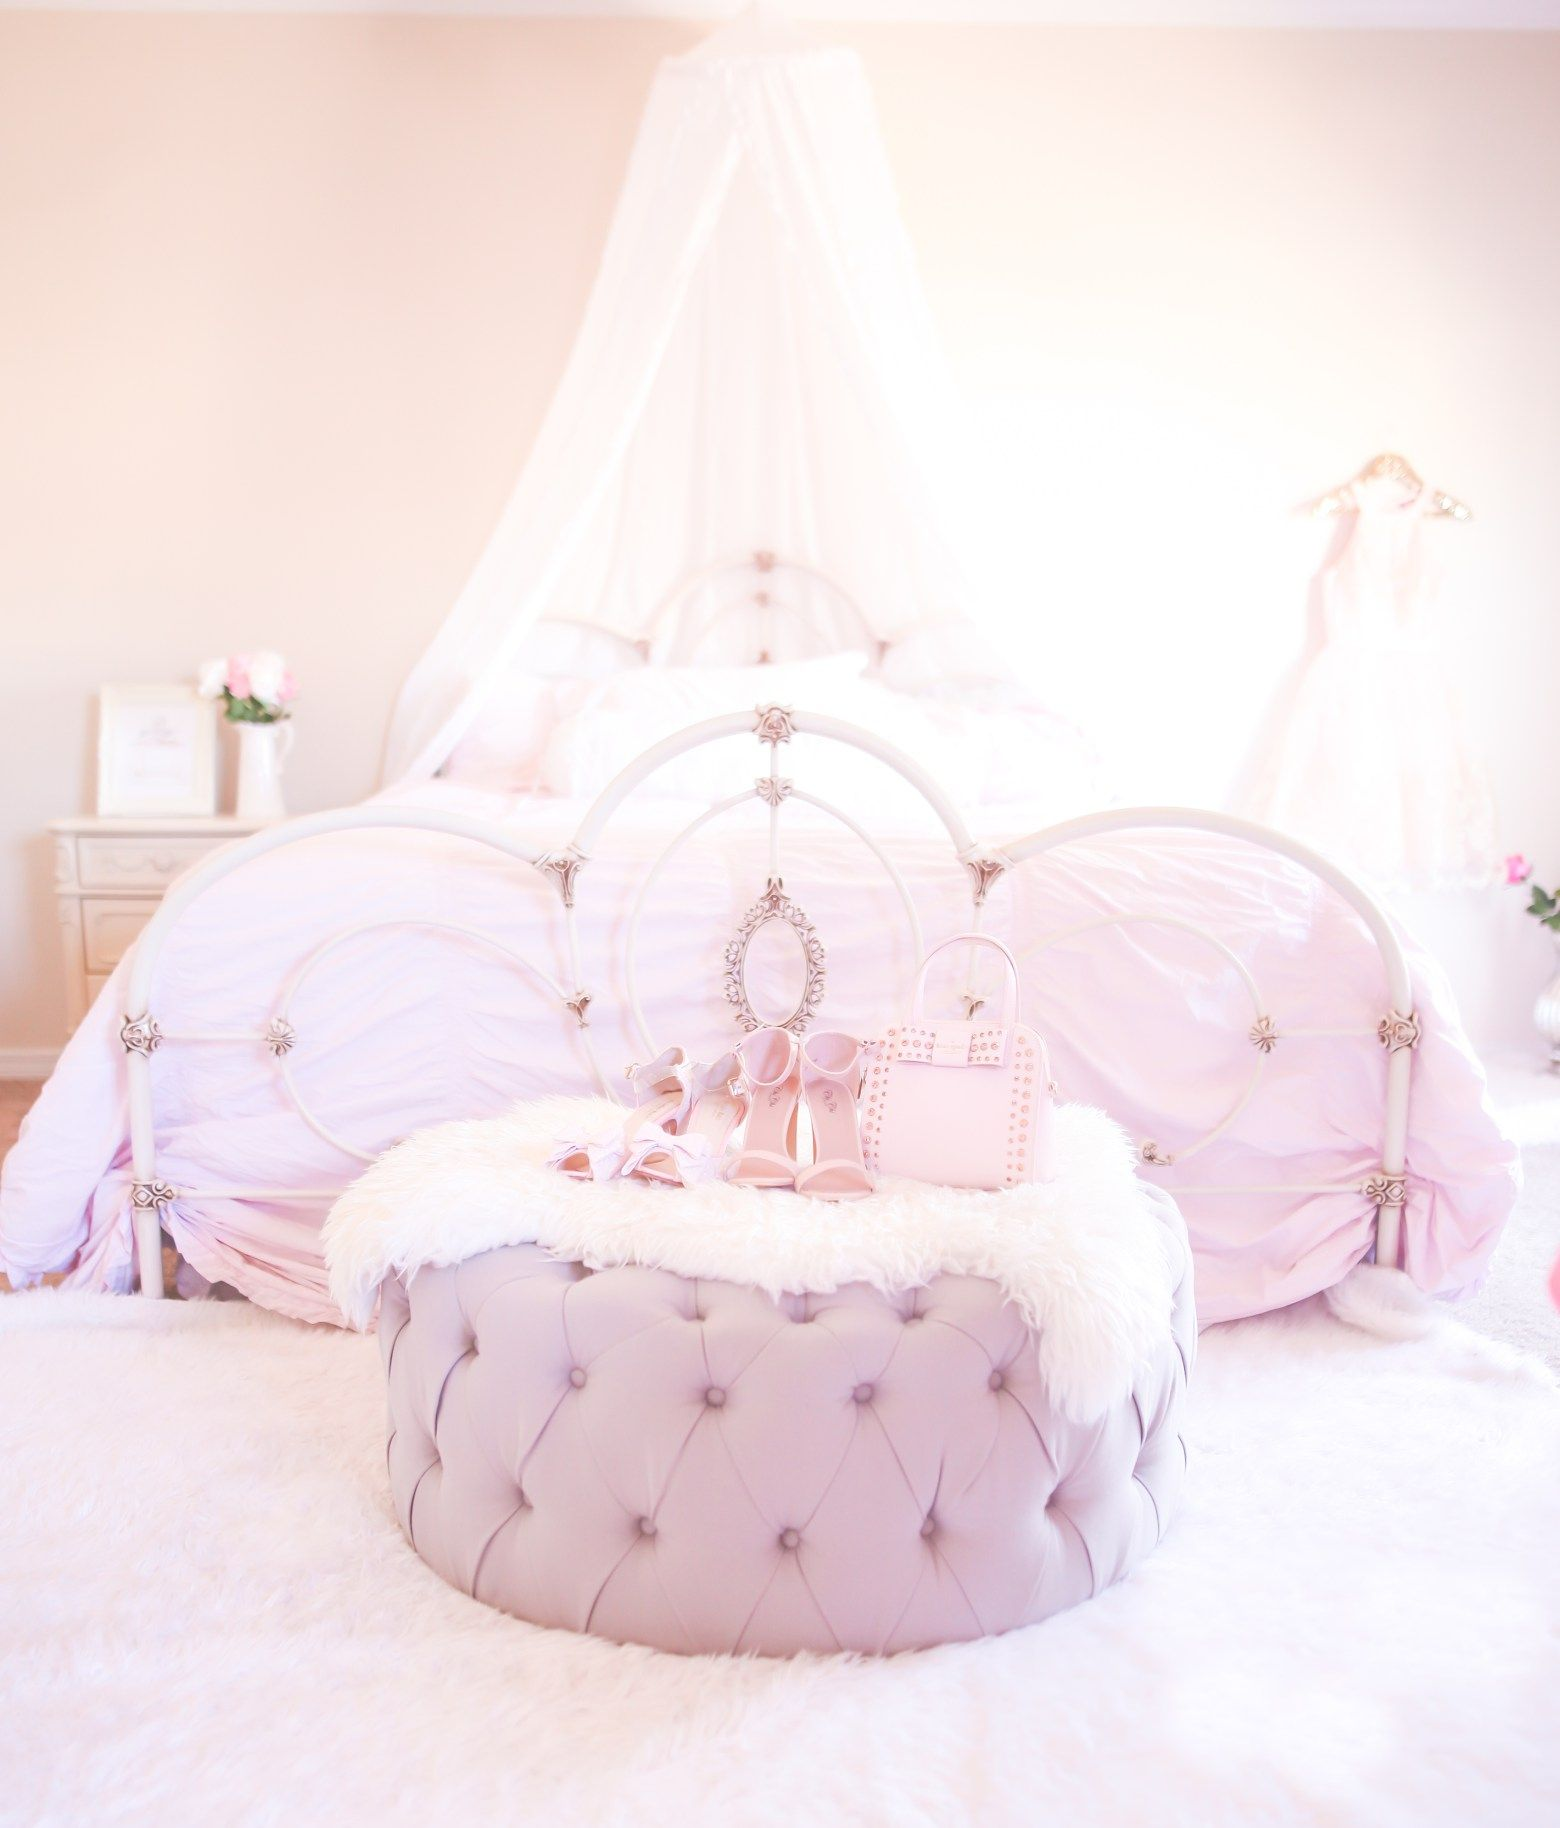 Youth Bedroom Ideas And Trends You Must Try: 5 Must-Haves For A Beautiful & Feminine Bedroom